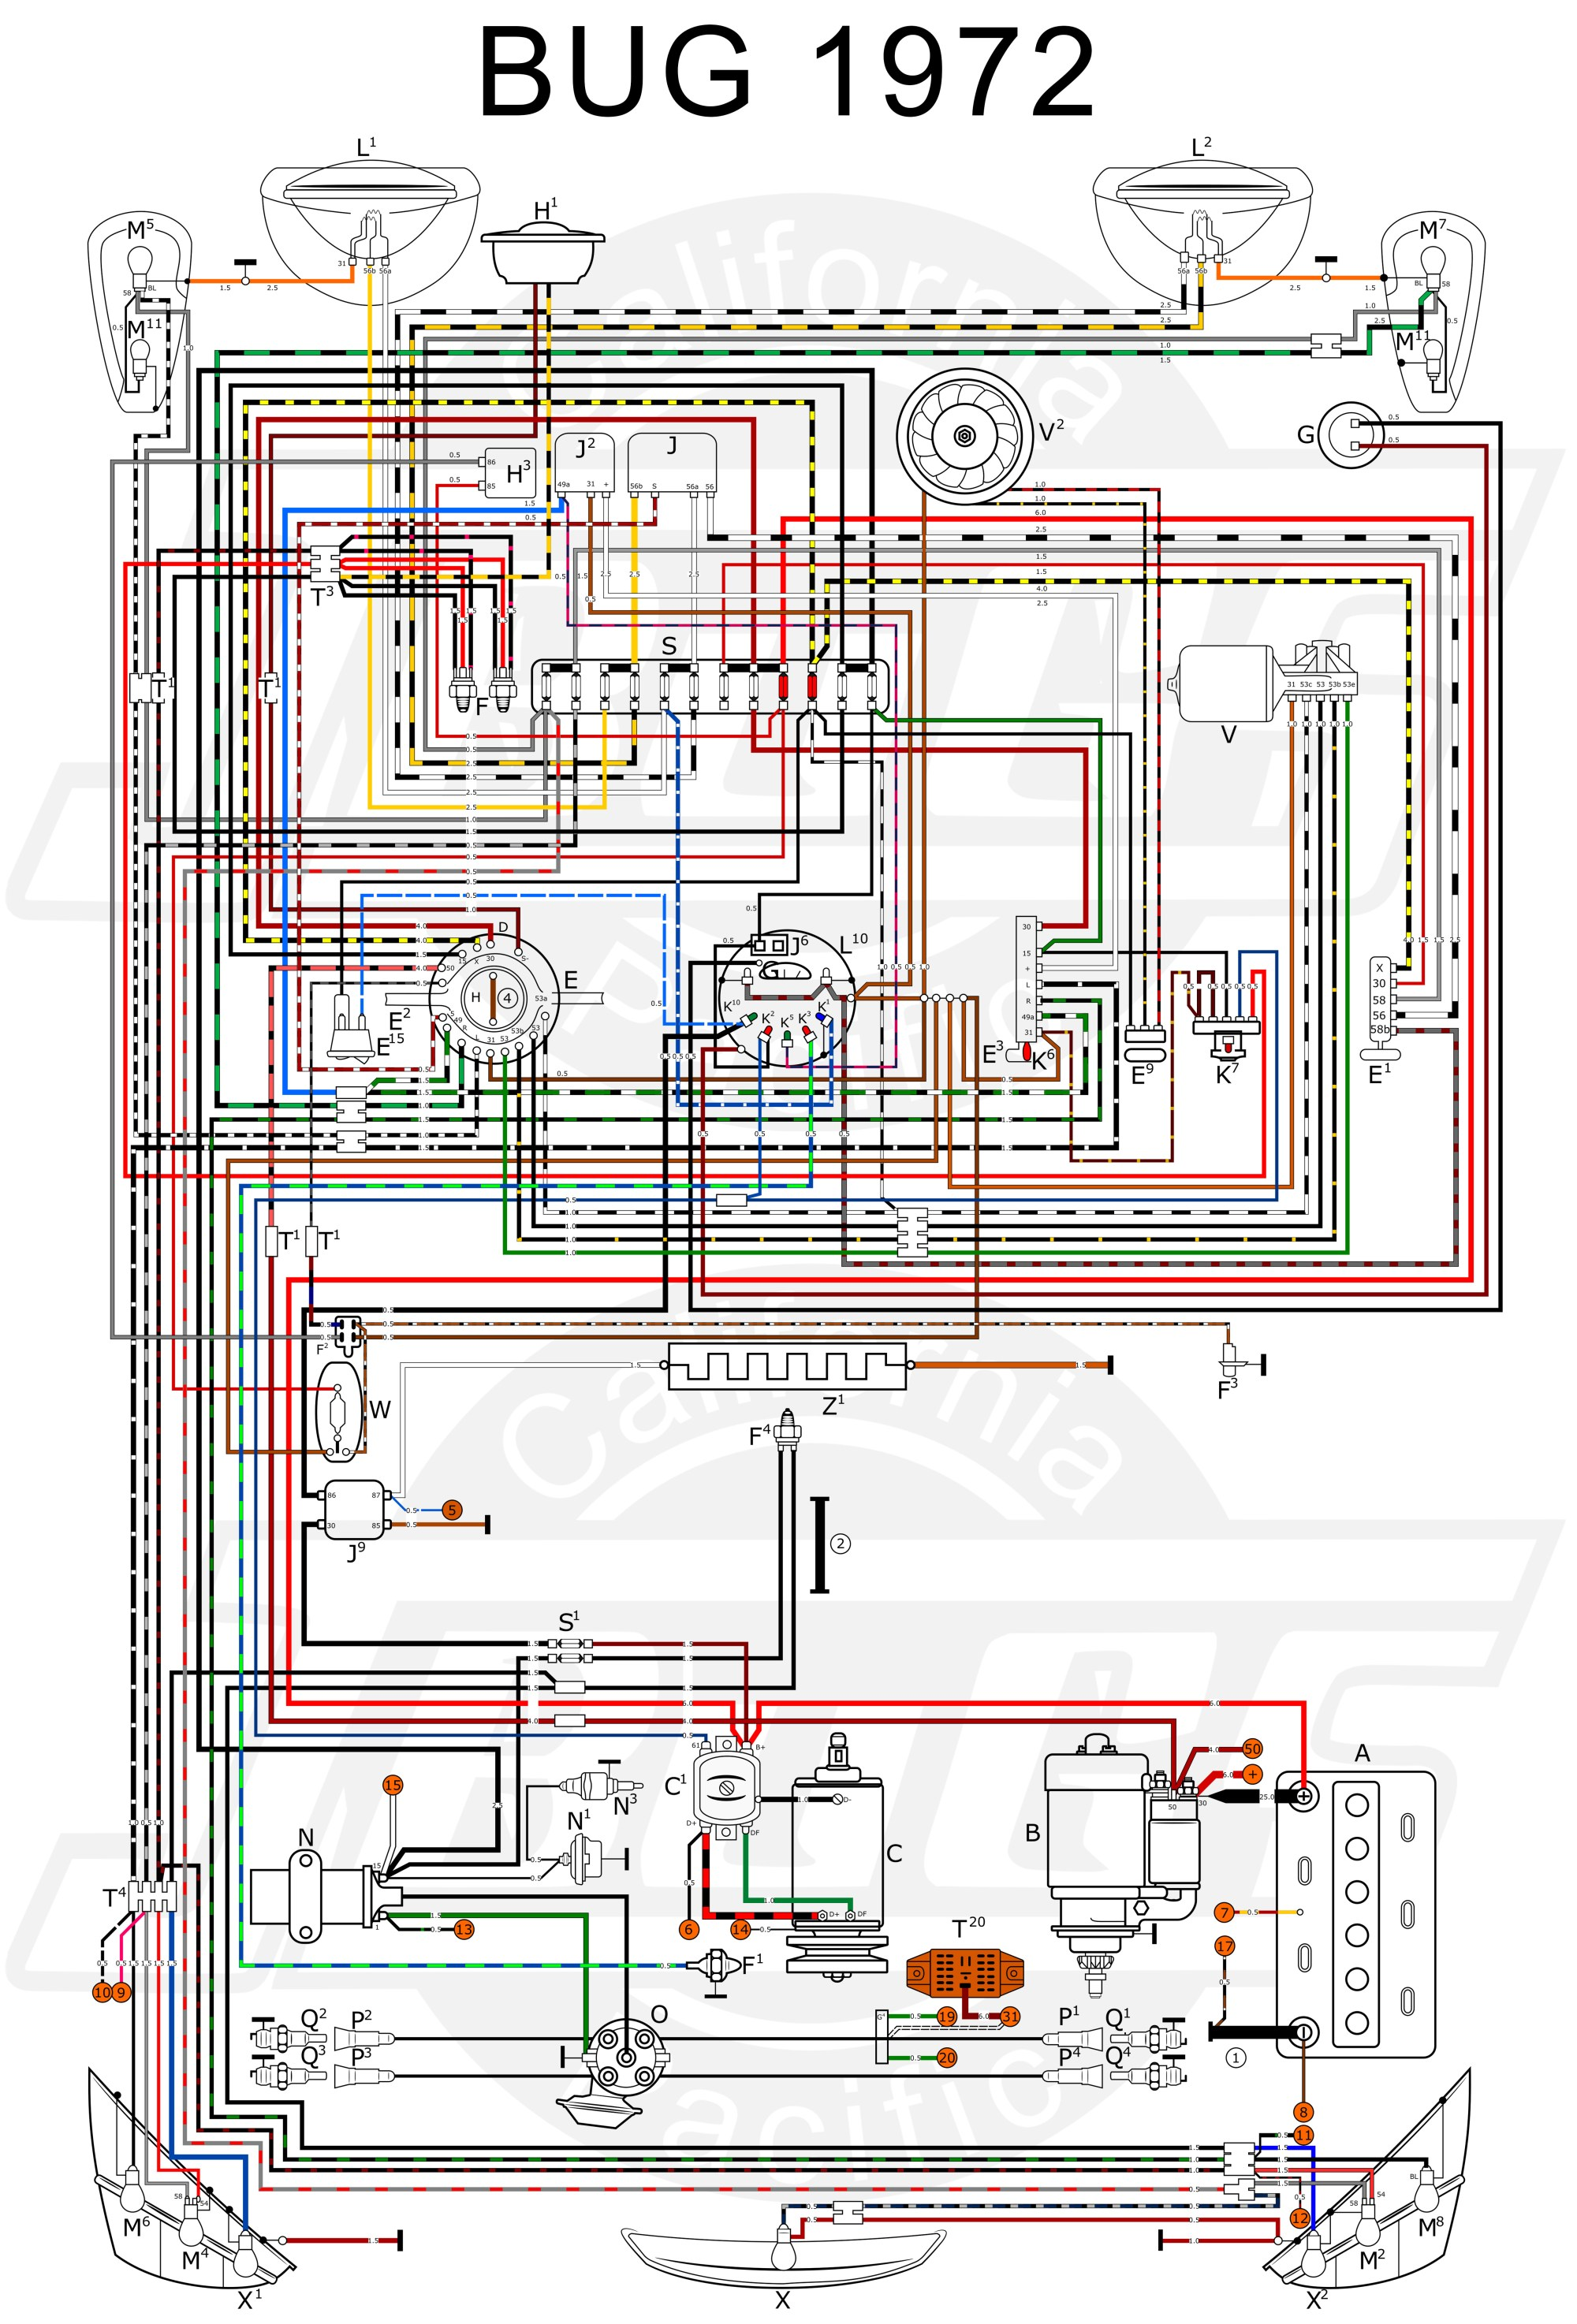 hight resolution of 1972 vw beetle wiring diagram wiring diagram toolbox starter wiring diagram beetle 1973